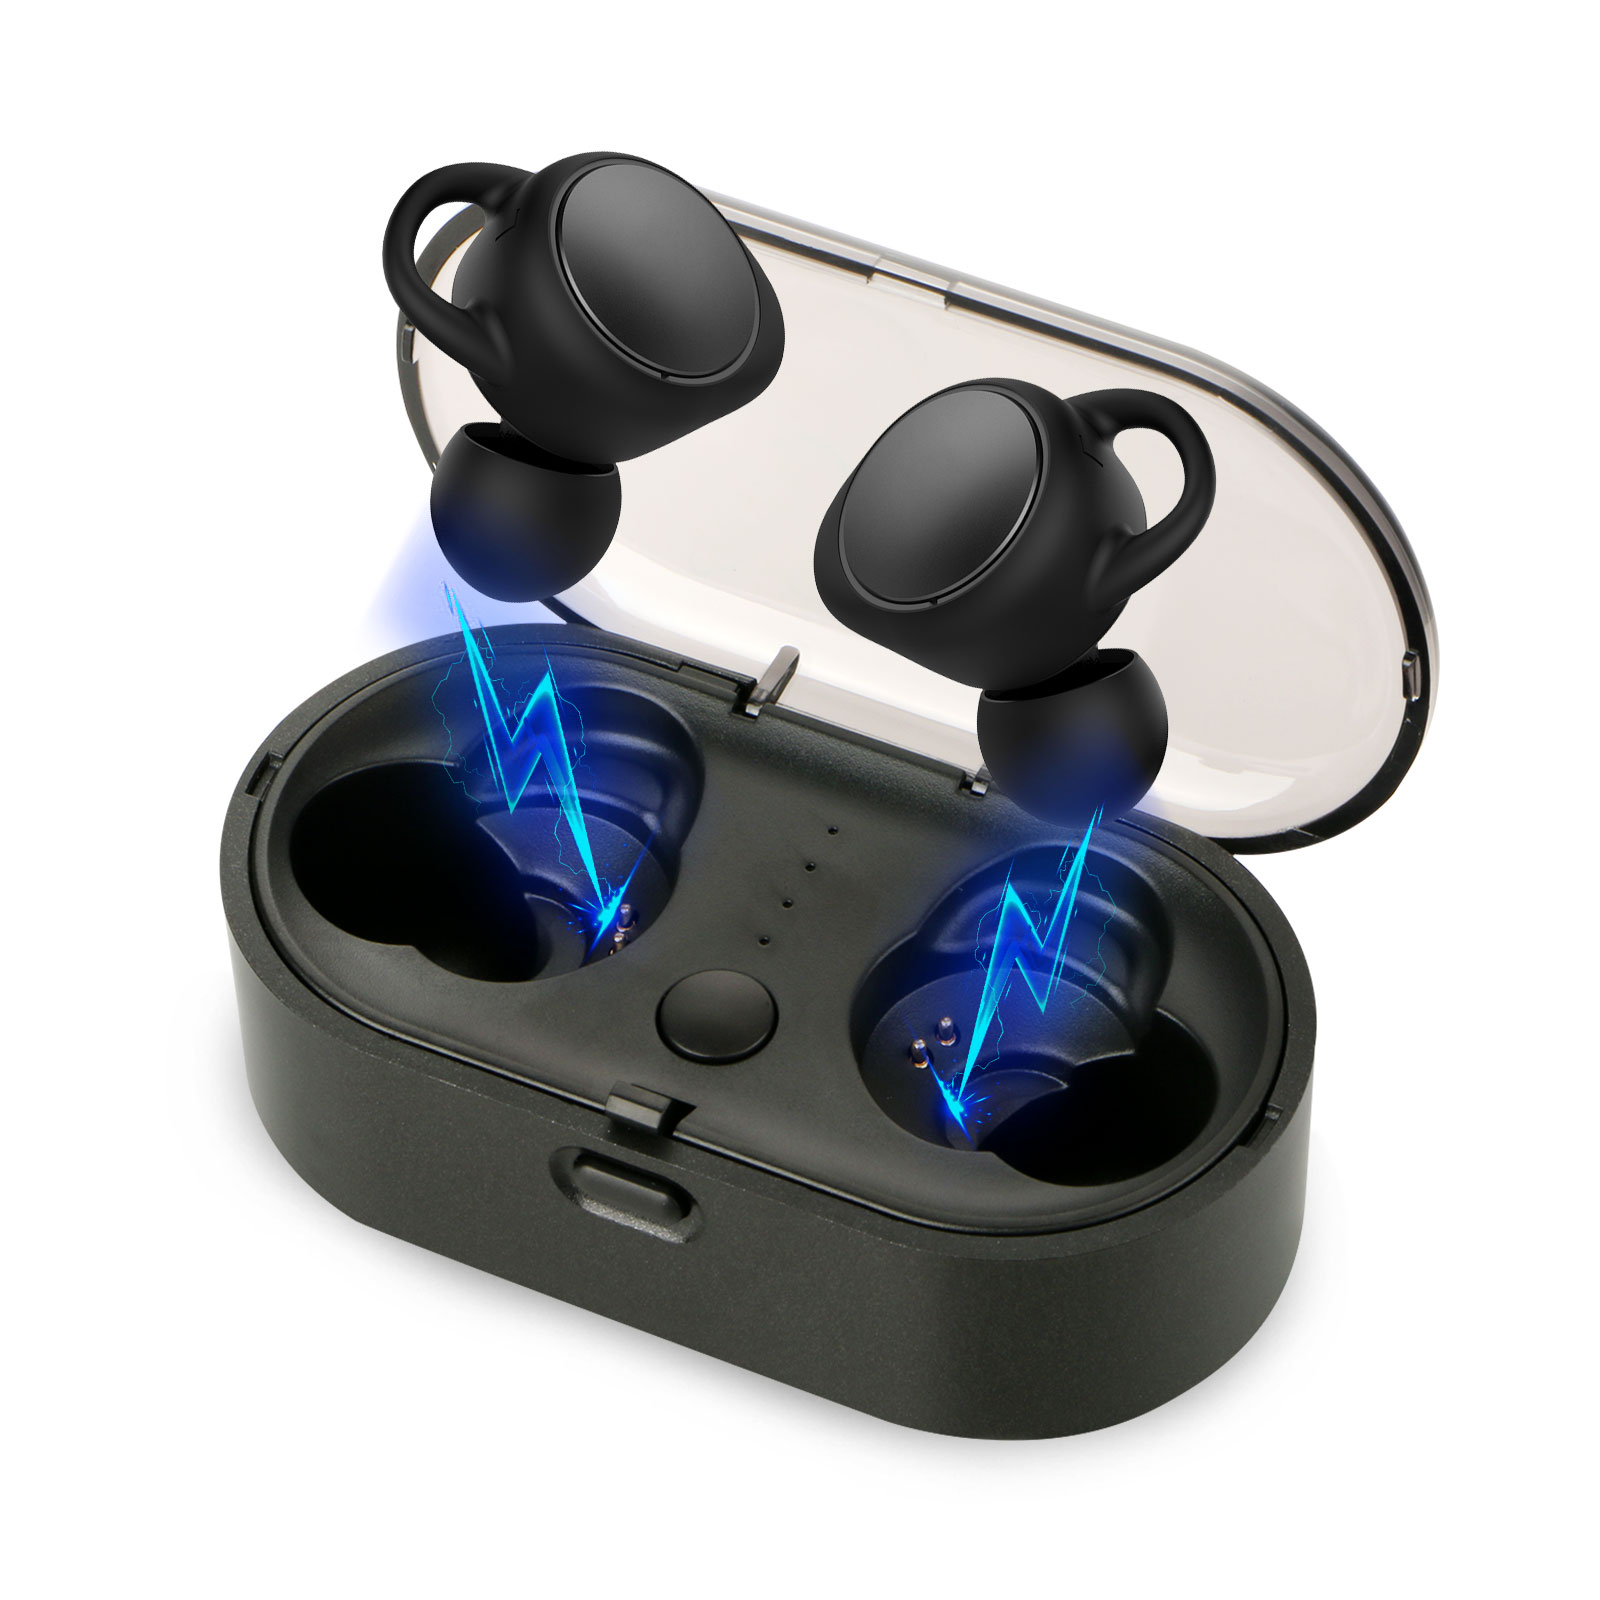 Universal Bluetooth 5.0 Wireless Headphones Stereo 3D Sound 18H Playtime Sweatproove Earphones with Charging Case